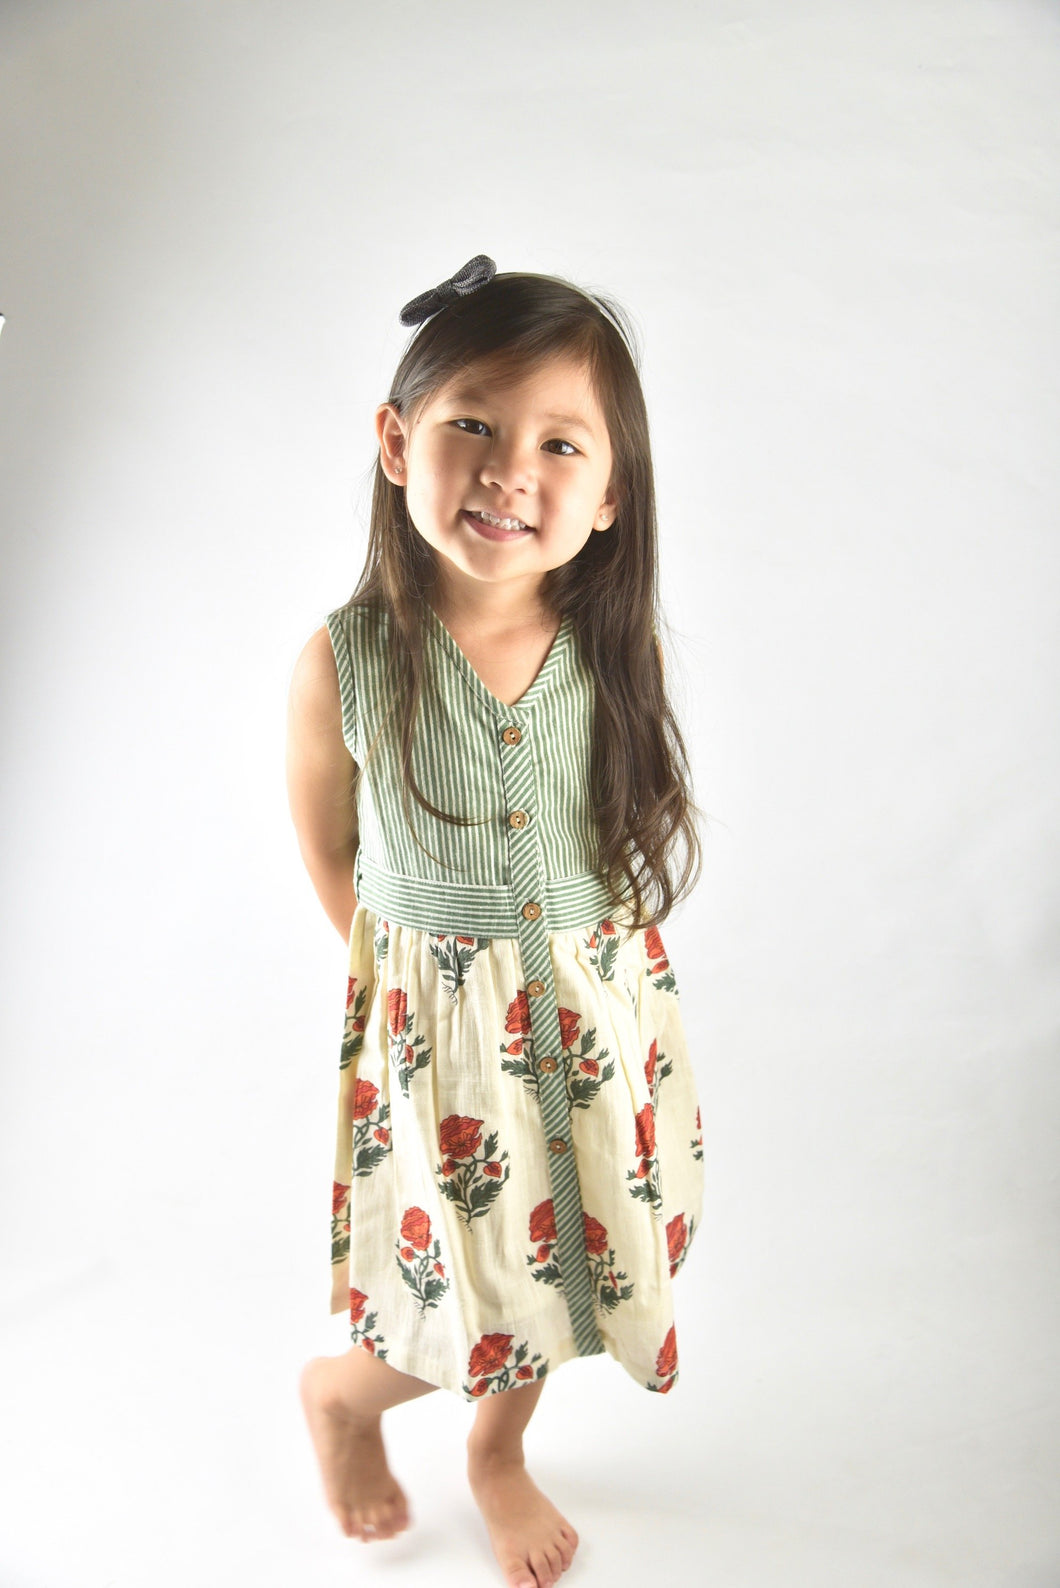 Off-white with Red Orange Floral Print and Green Pinstripe Belted Dress - Kids Clothing, Dress - Girls Dress, Yo Baby Online - Yo Baby